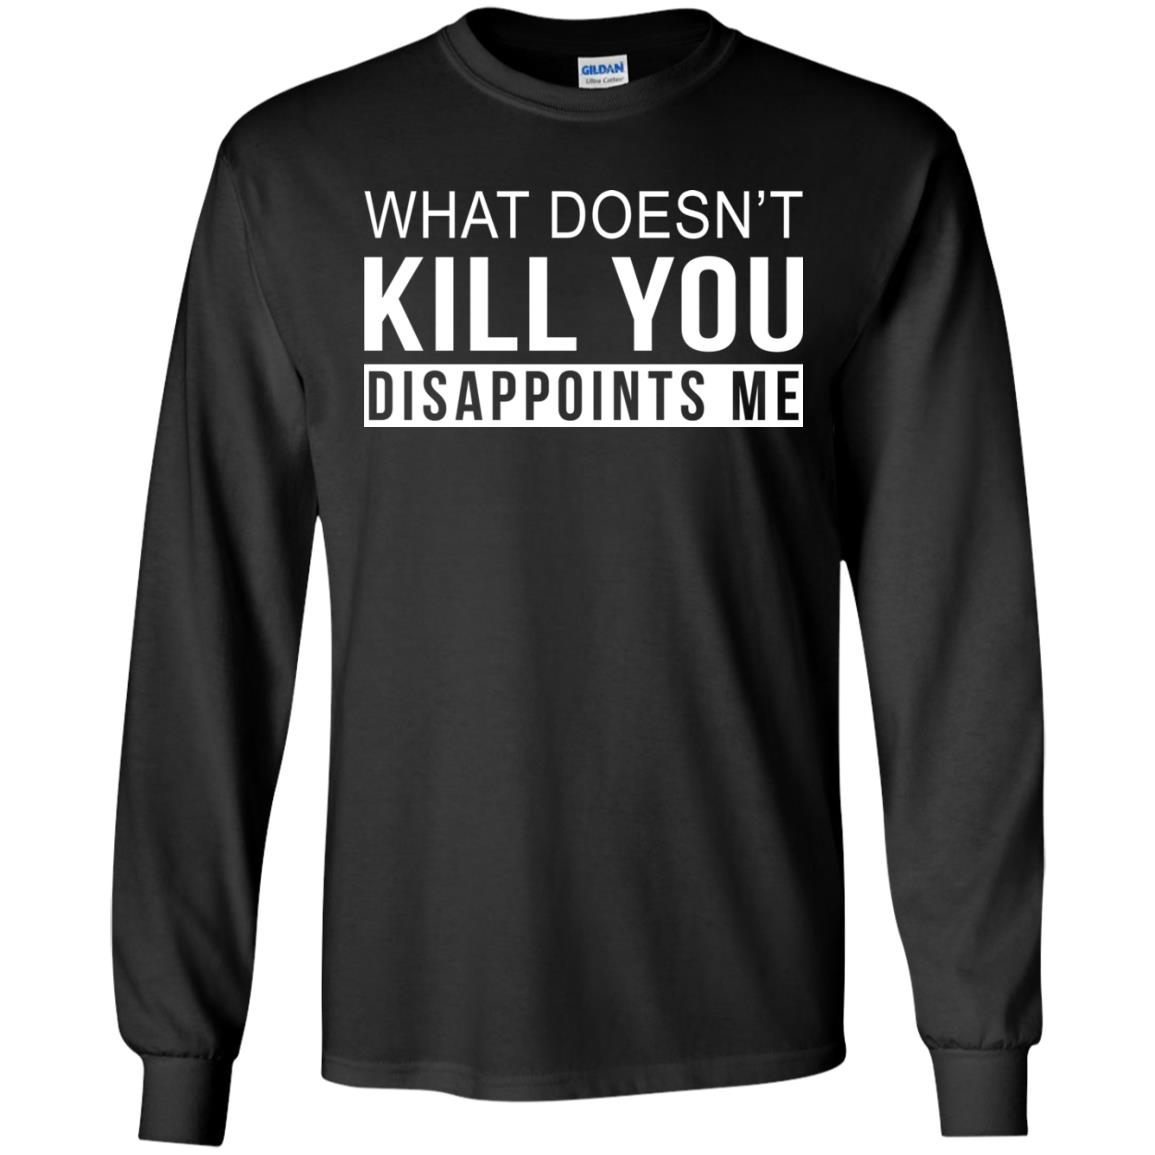 image 264 - What Doesn't Kill You Disappoints Shirt, Hoodie, Sweatshirt